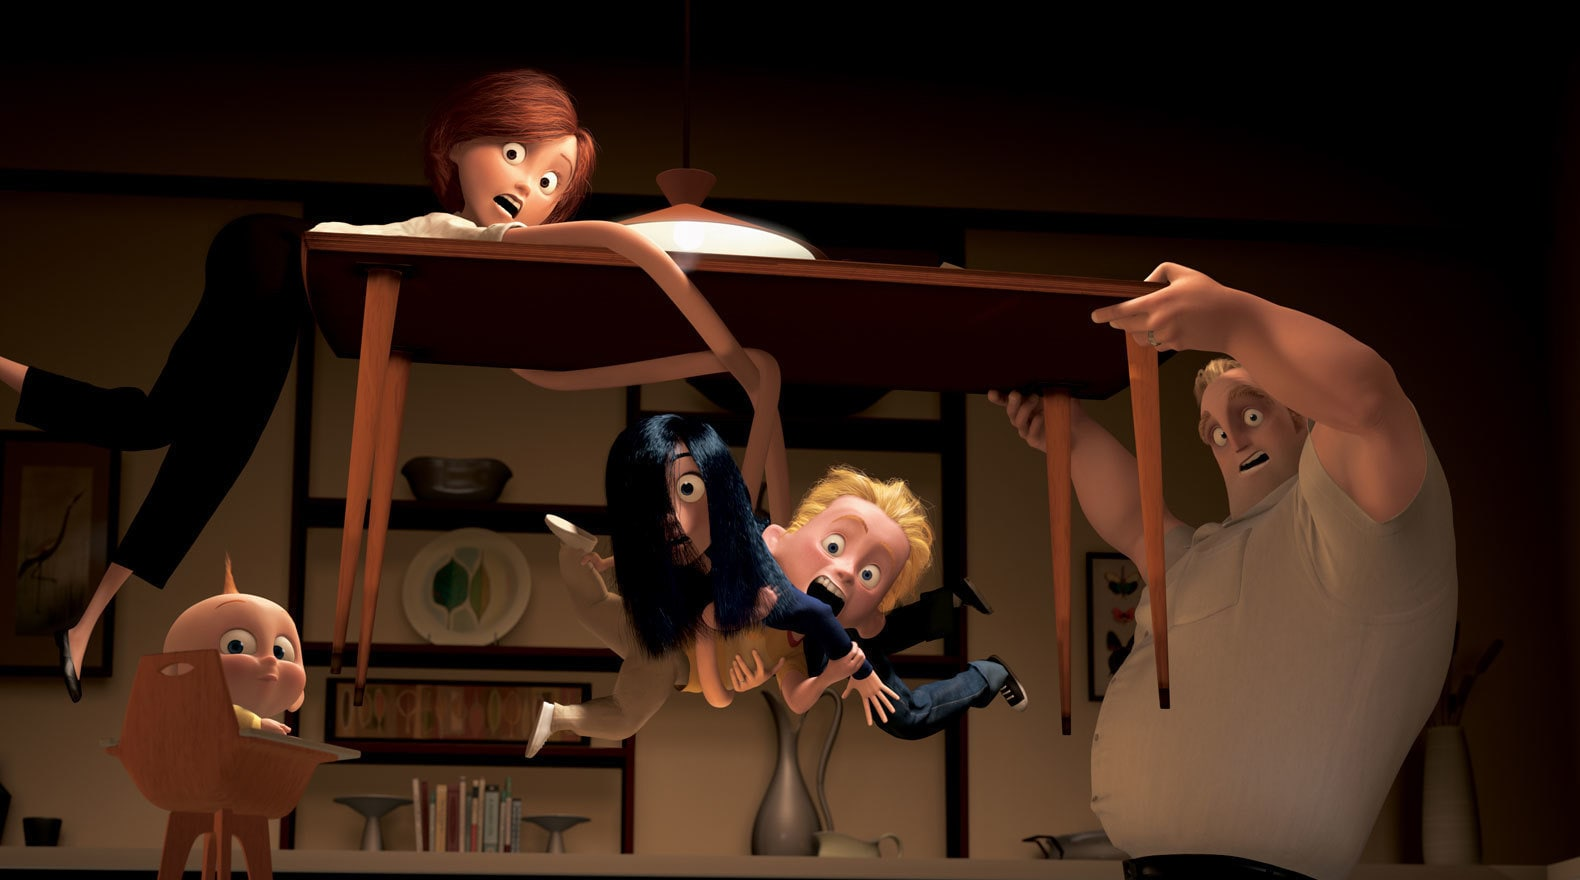 """Bonding time with the Parrs family in """"The Incredibles"""""""